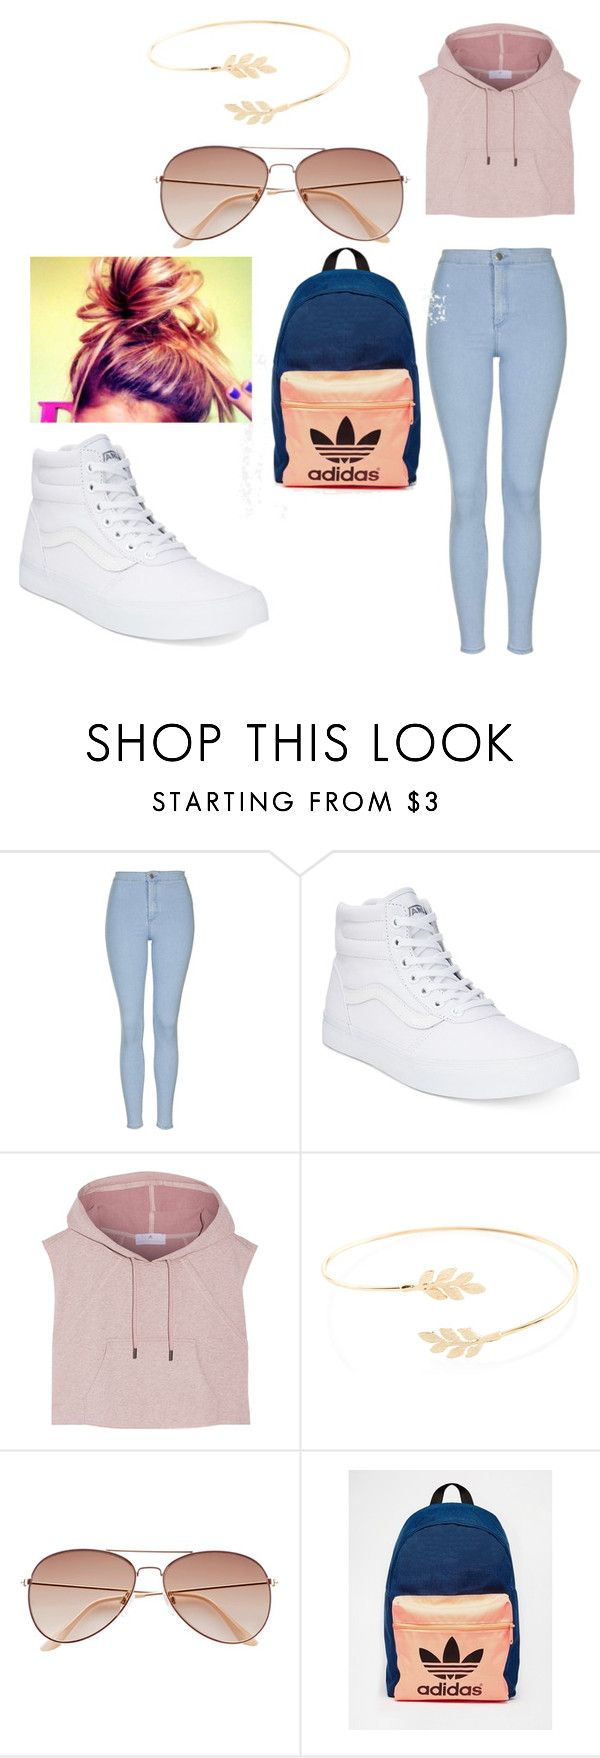 """on my way to school"" by sashten ❤ liked on Polyvore featuring Topshop, Vans, adidas, Accessorize and H&M"